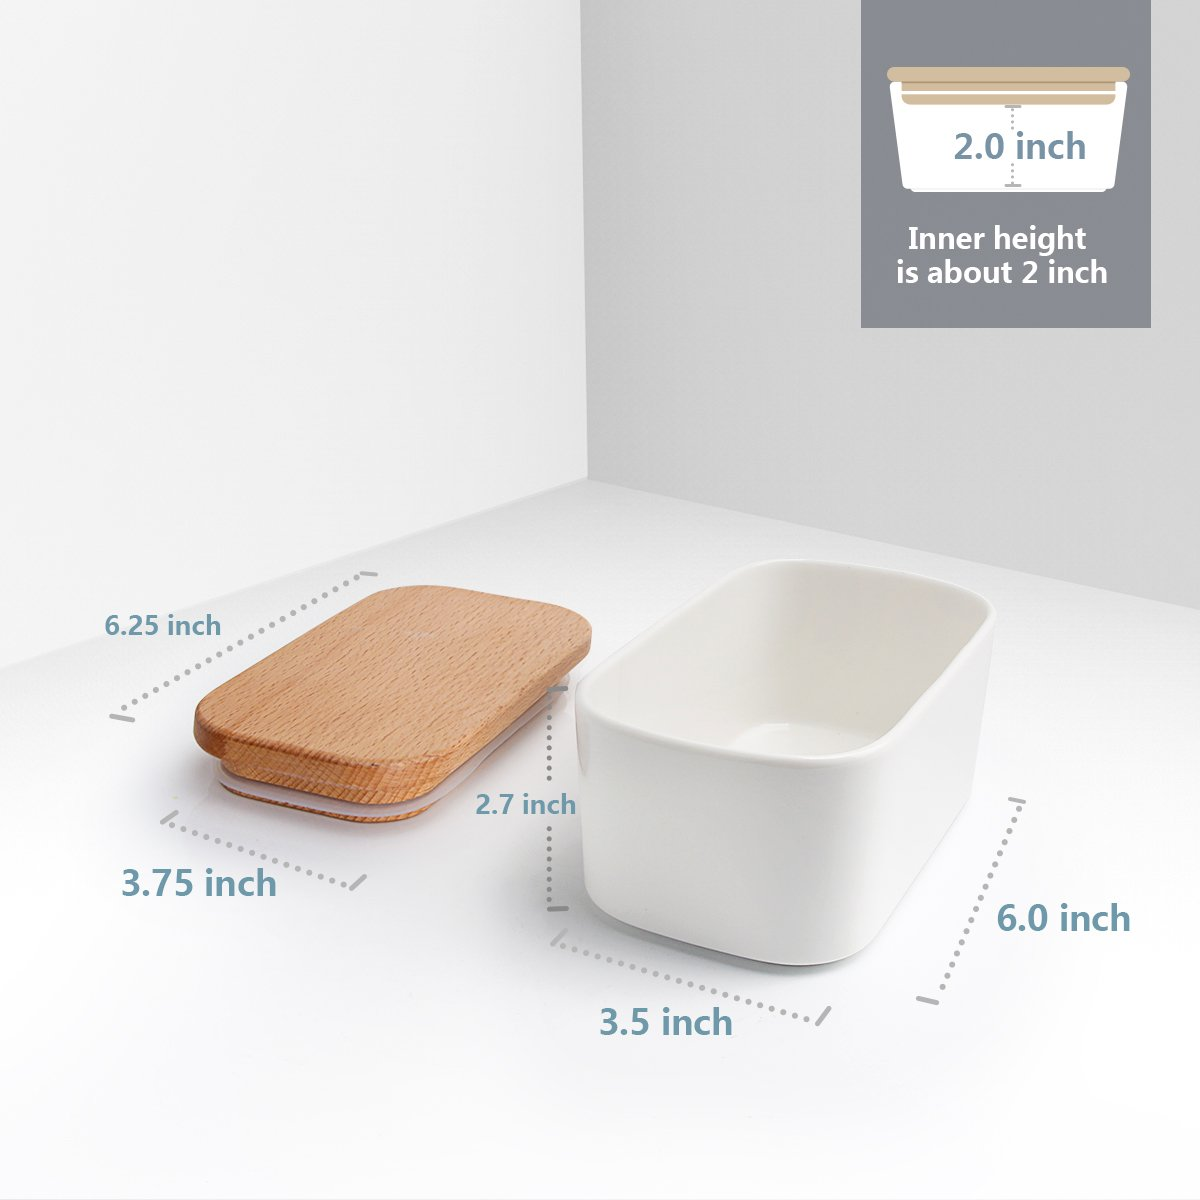 [NEW AND IMPROVED] Sweese 3151 Large Butter Dish - Airtight Butter Keeper Holds Up to 2 Sticks of butter - Porcelain Container with Beech by Sweese (Image #5)